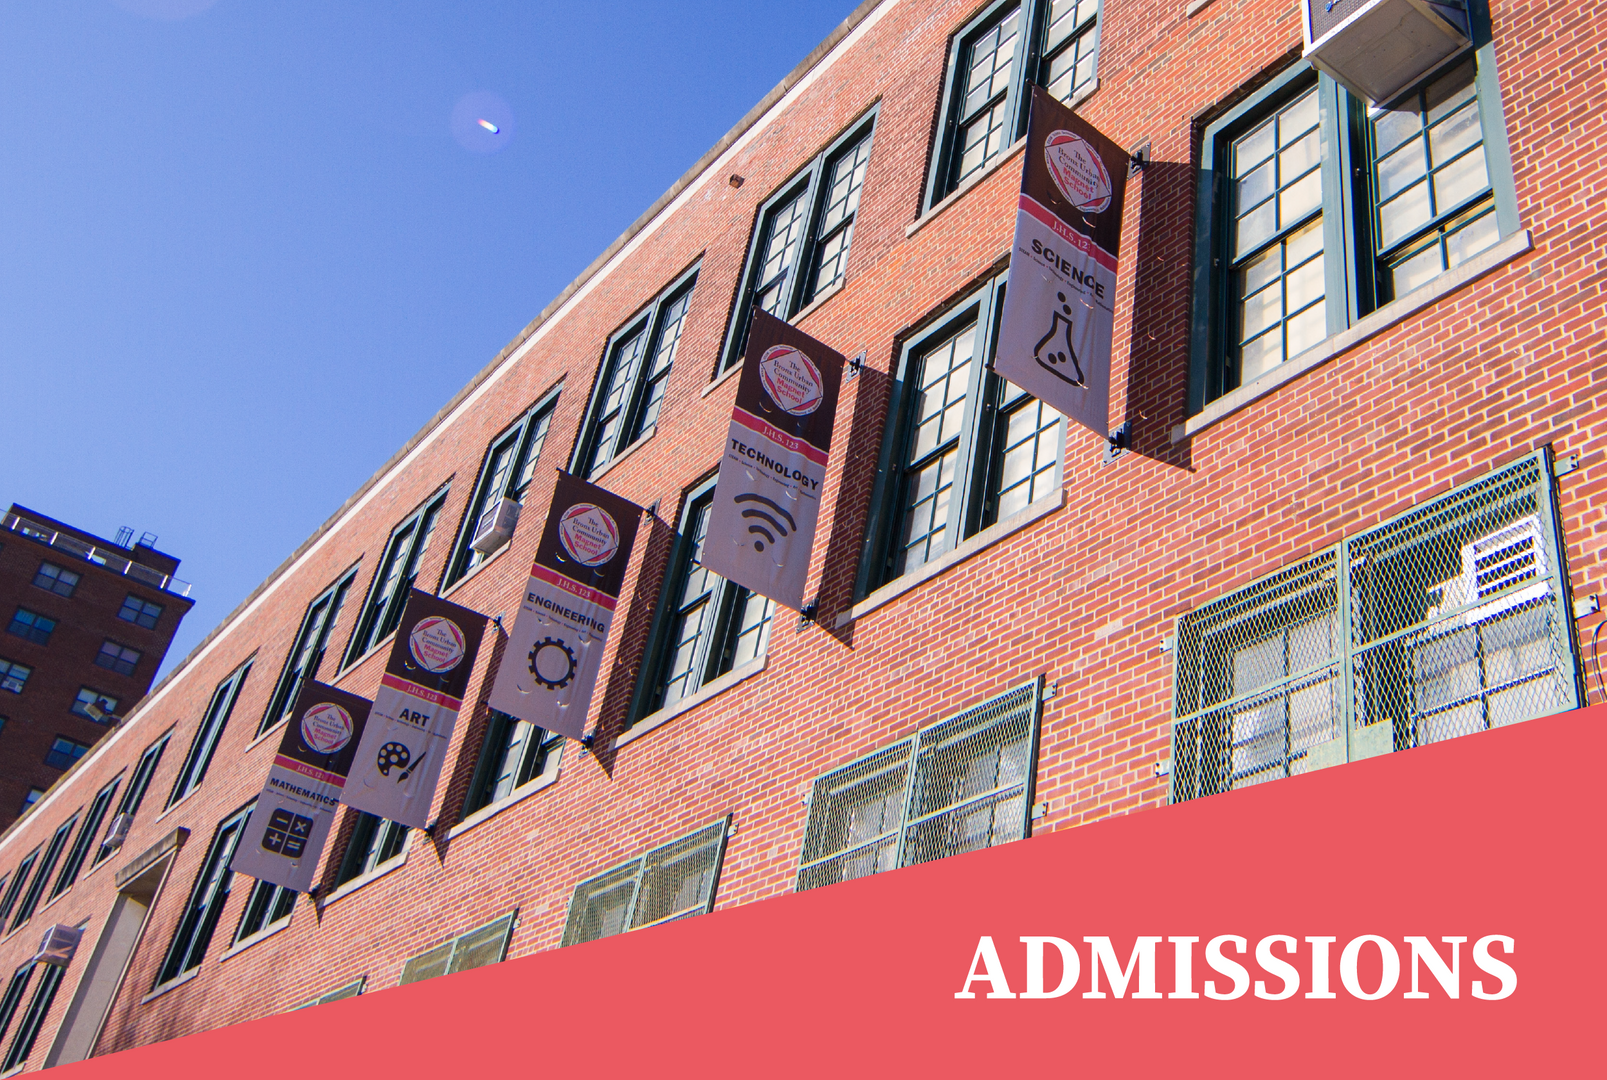 Admissions: STEAM flags